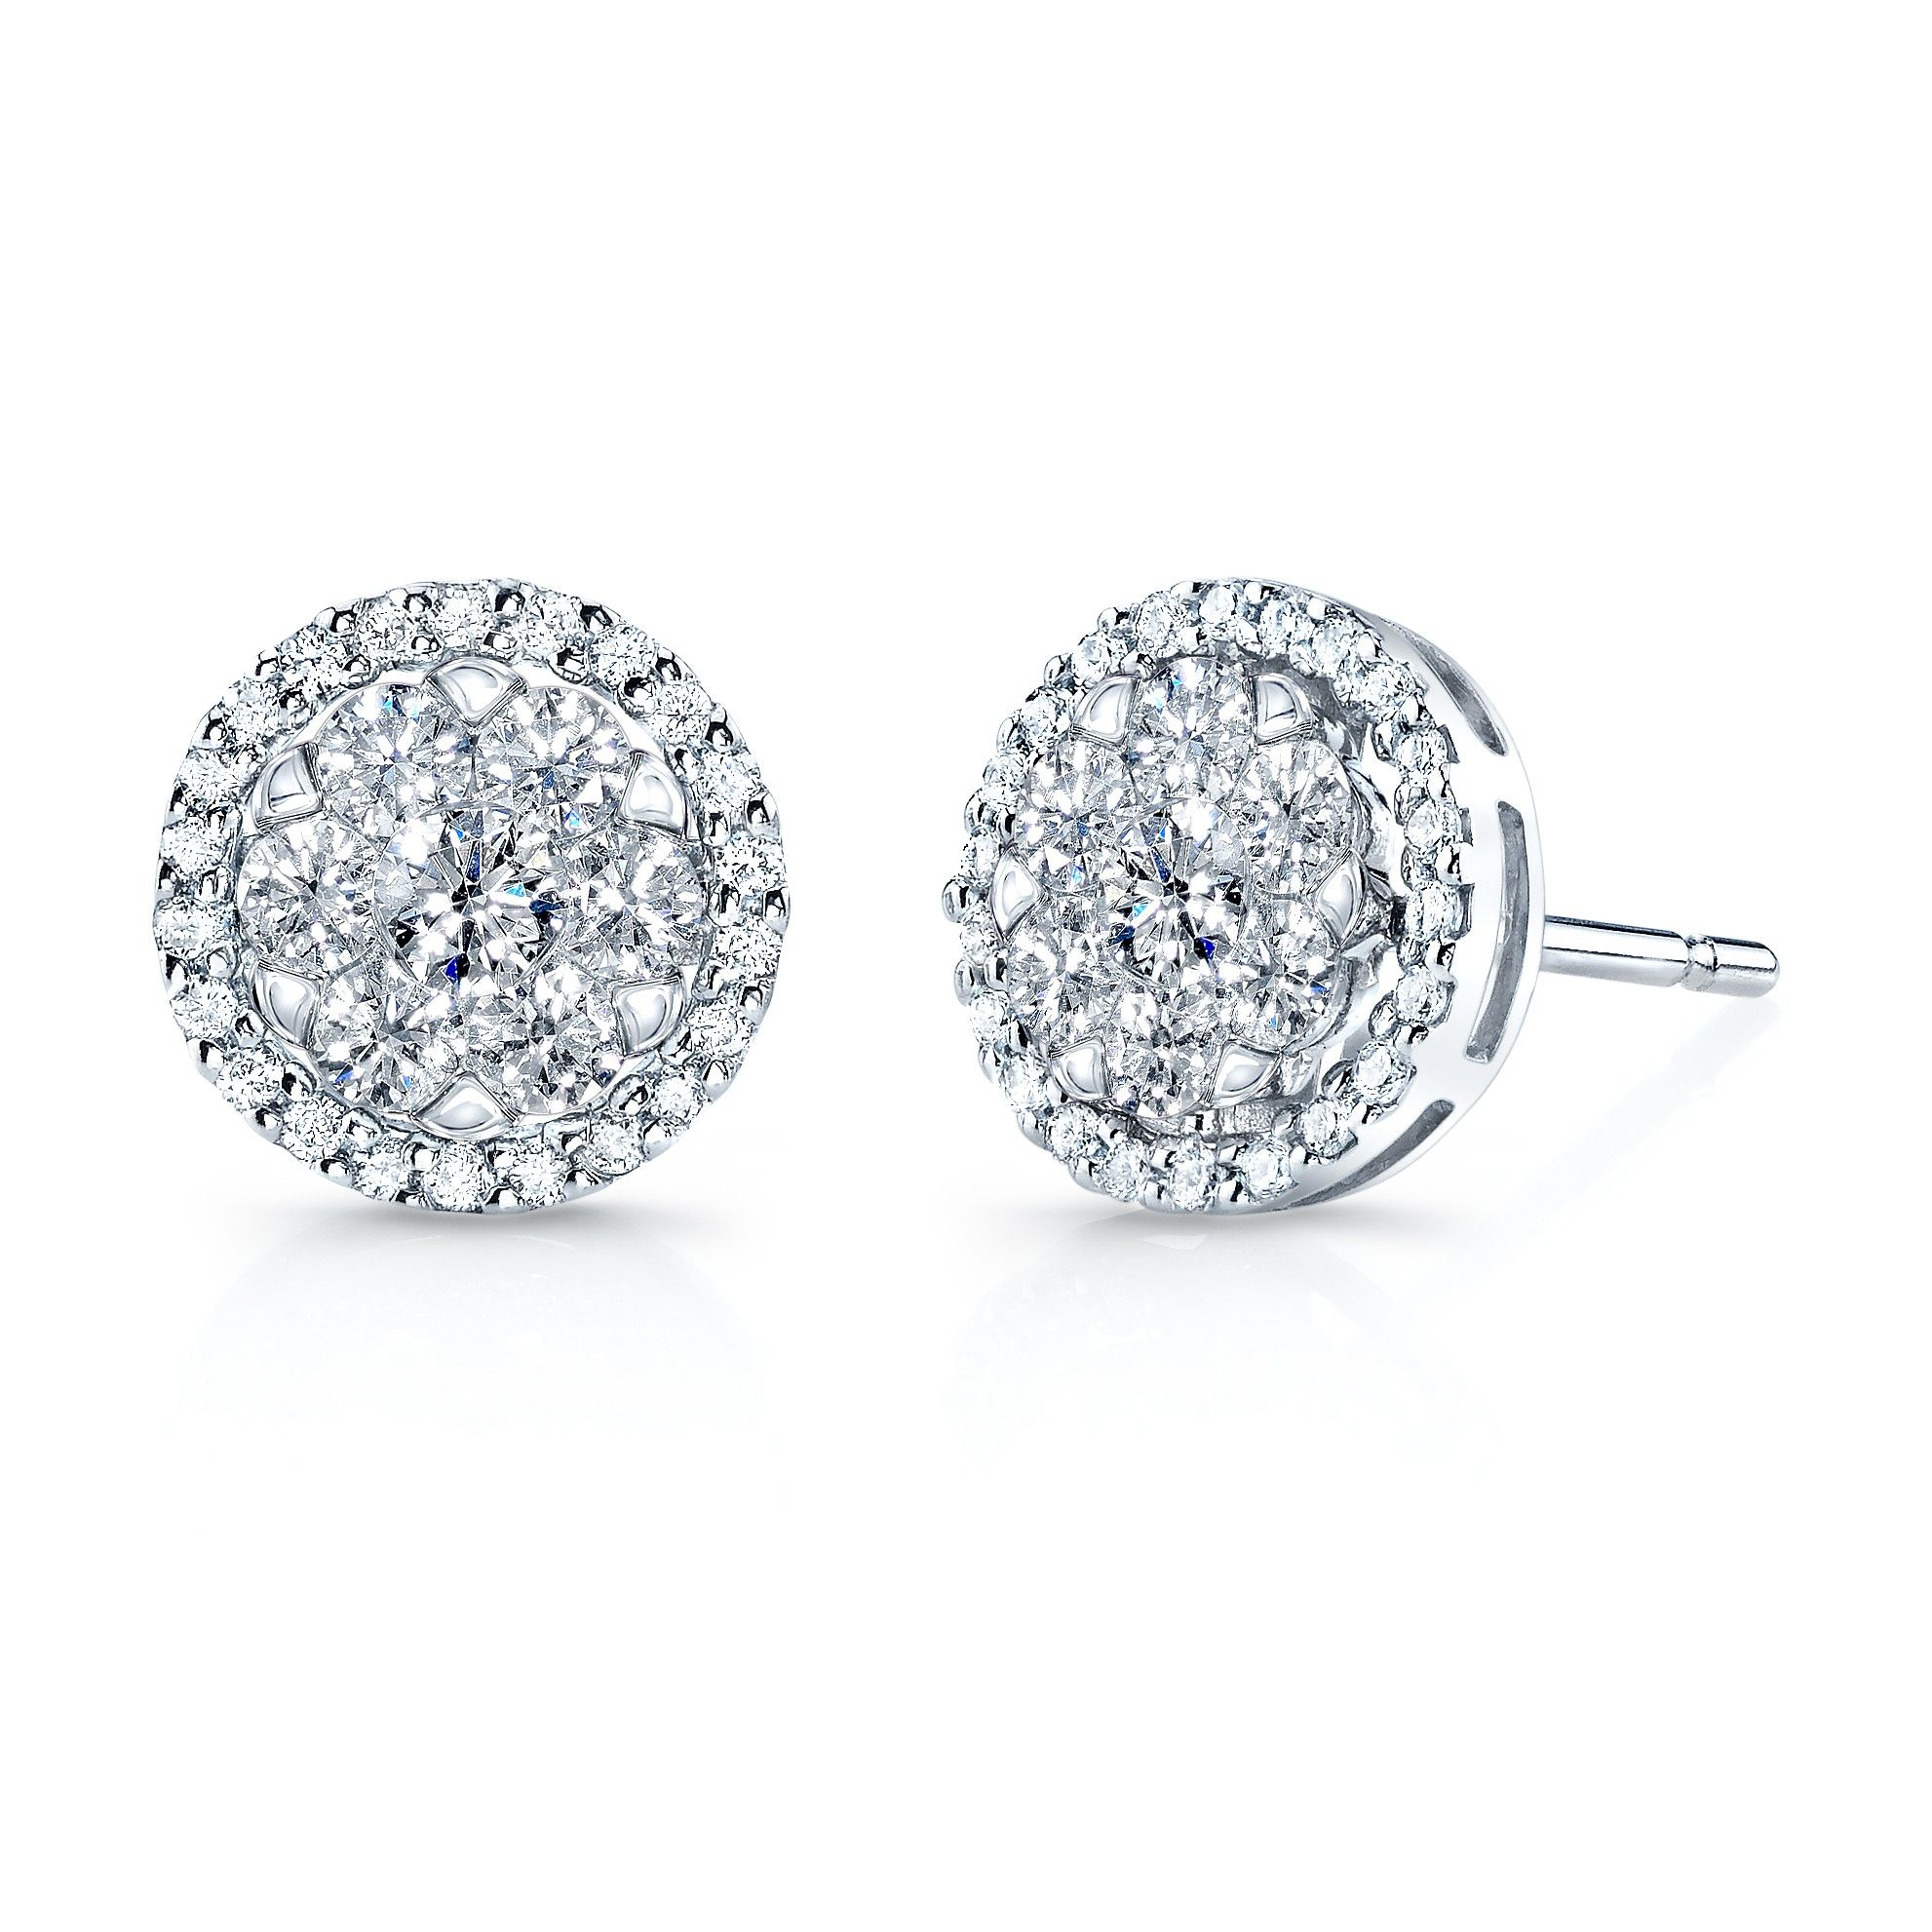 Affordable Diamond Studs Chamahez Earrings 0 30 Total Weight Conflict Free Round Brilliant Cut Diamonds Color Near